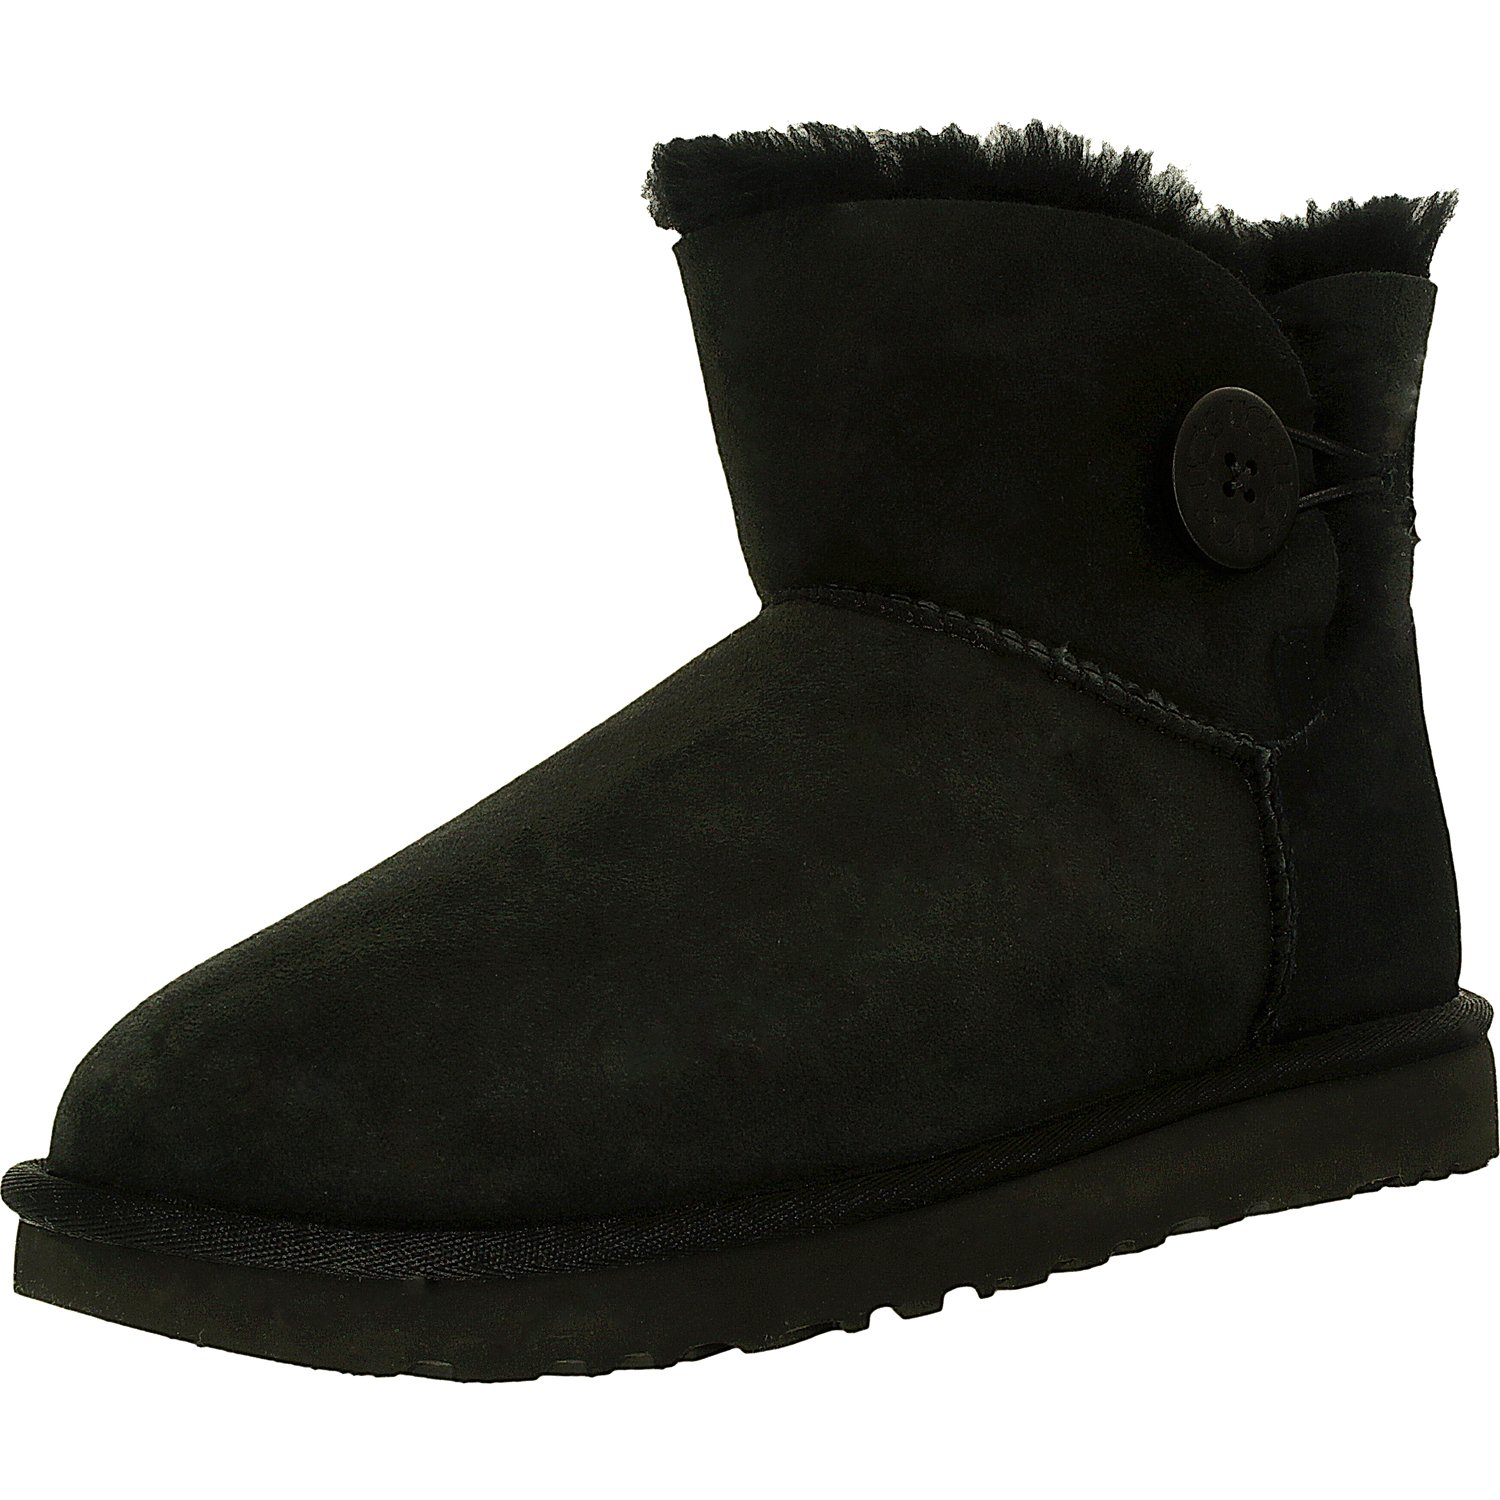 Ugg Women's Mini Bailey Button II Black High-Top Sheepski...